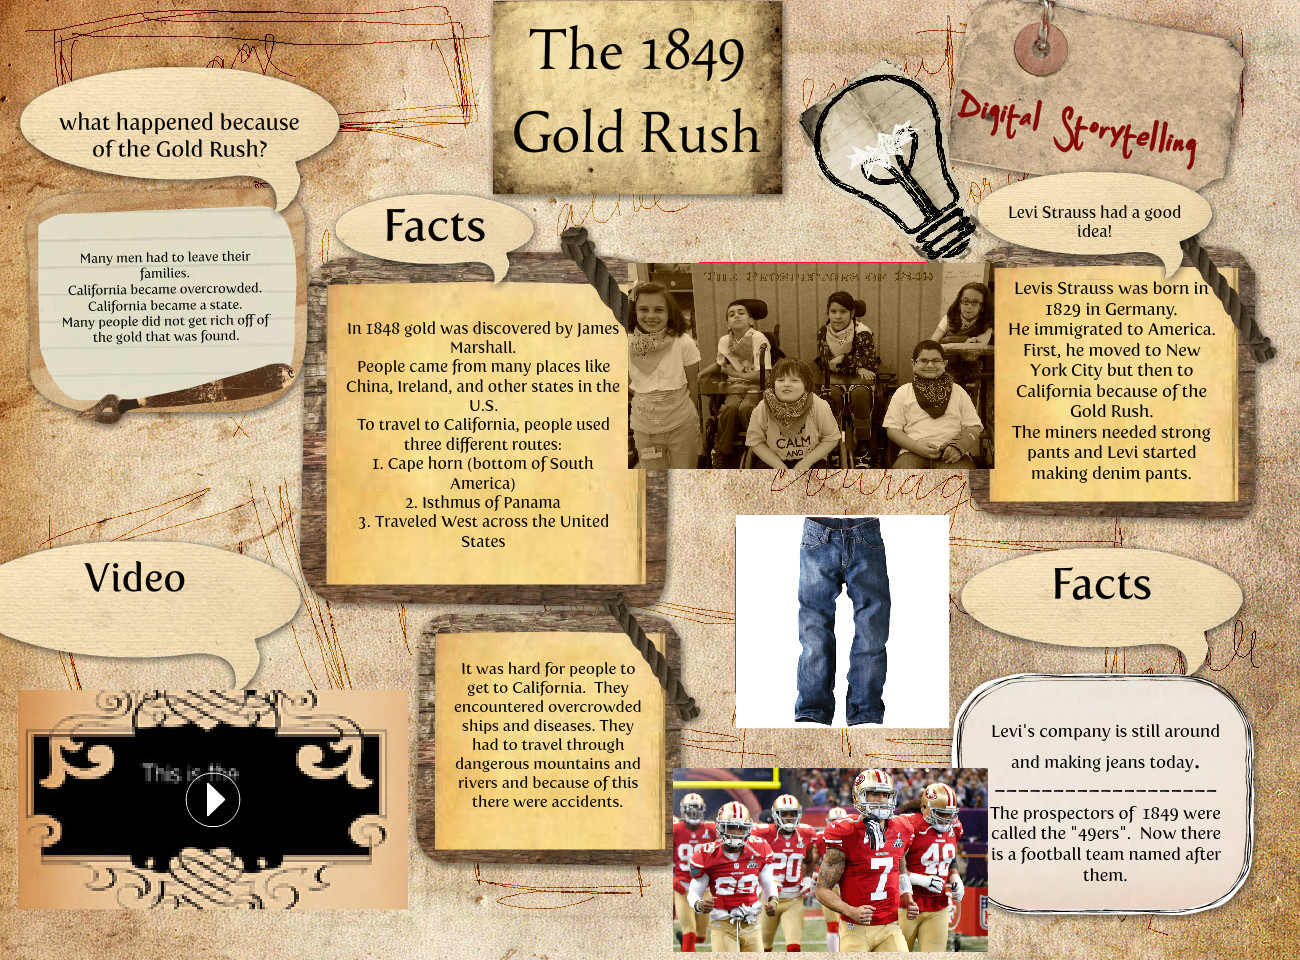 The 1849 Gold Rush